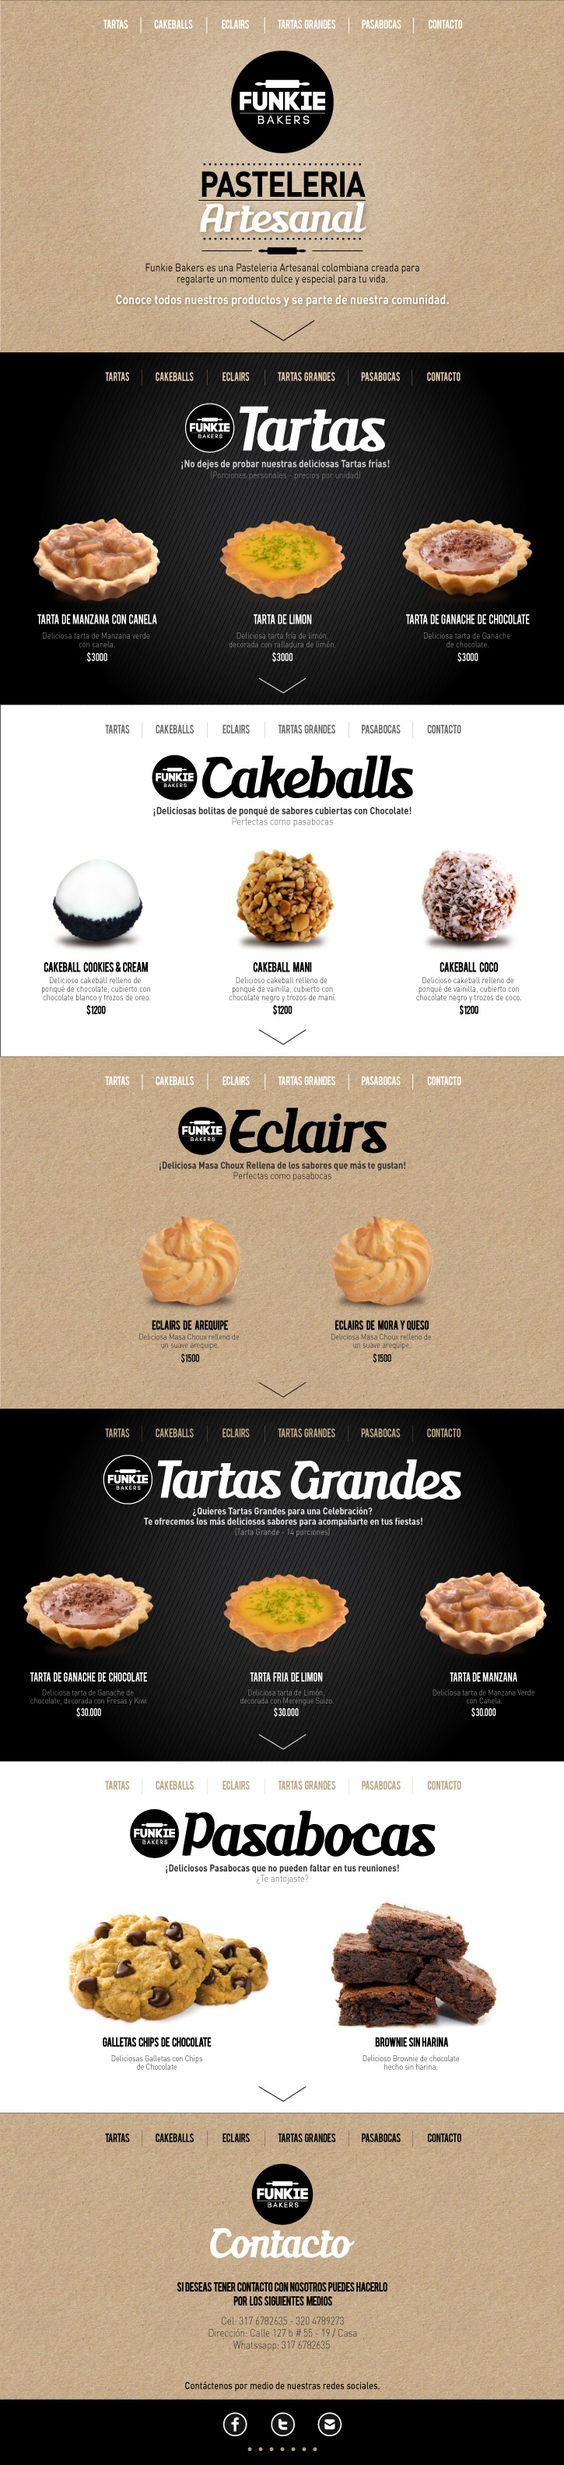 Web Design - Funkie Bakers http://www.behance.net/JuanitaGarcia - i love the divided sections